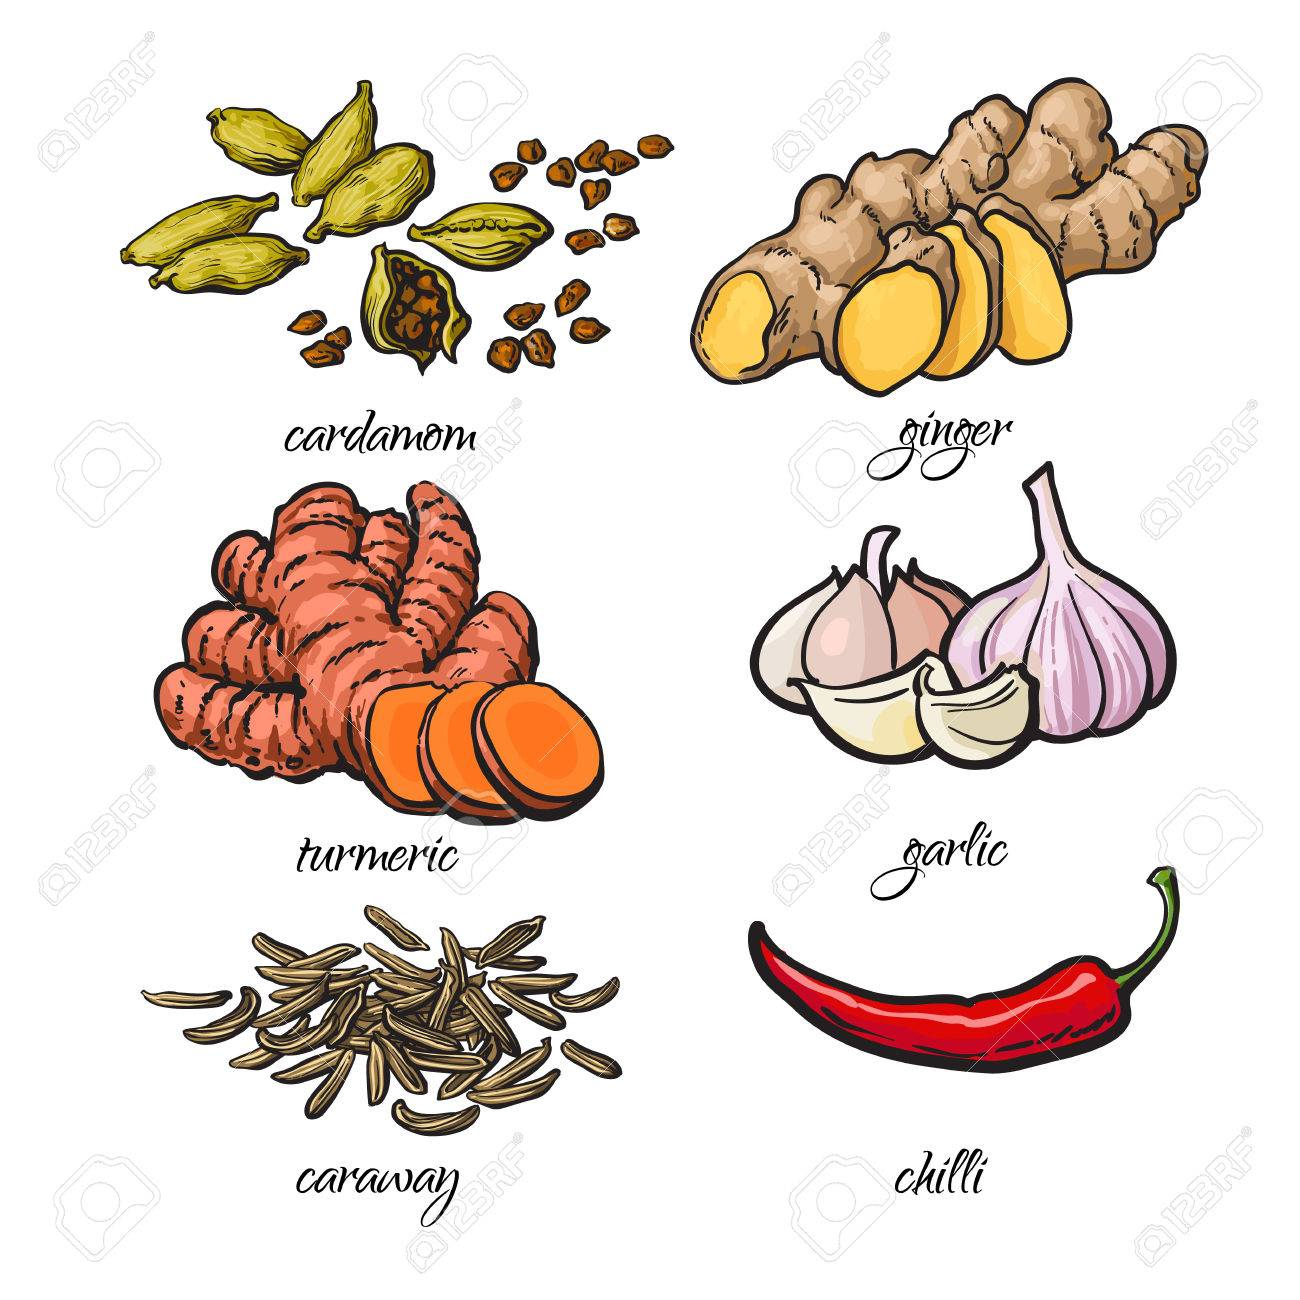 Set of spices - garlic, ginger, turmeric, cardamom, chili, caraway, isolated sketch style vector illustration on white background. Traditional cooking spices in Asian and Indian cuisine - 60096124